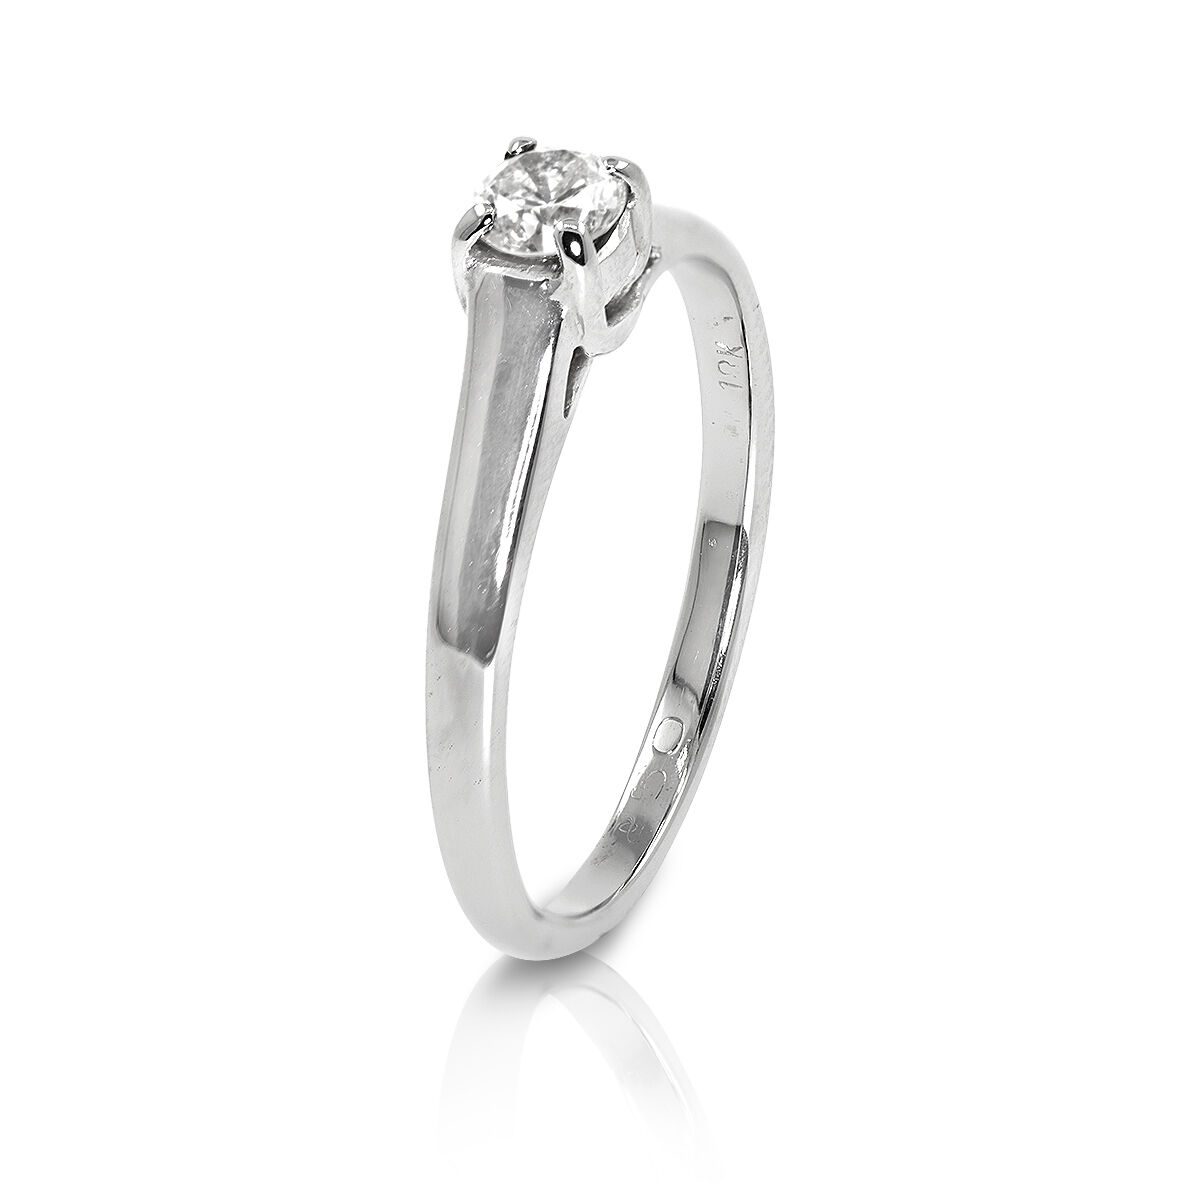 18 CT White gold 0.25 Diamond Solitaire Engagement Ring - Size M  (00397)